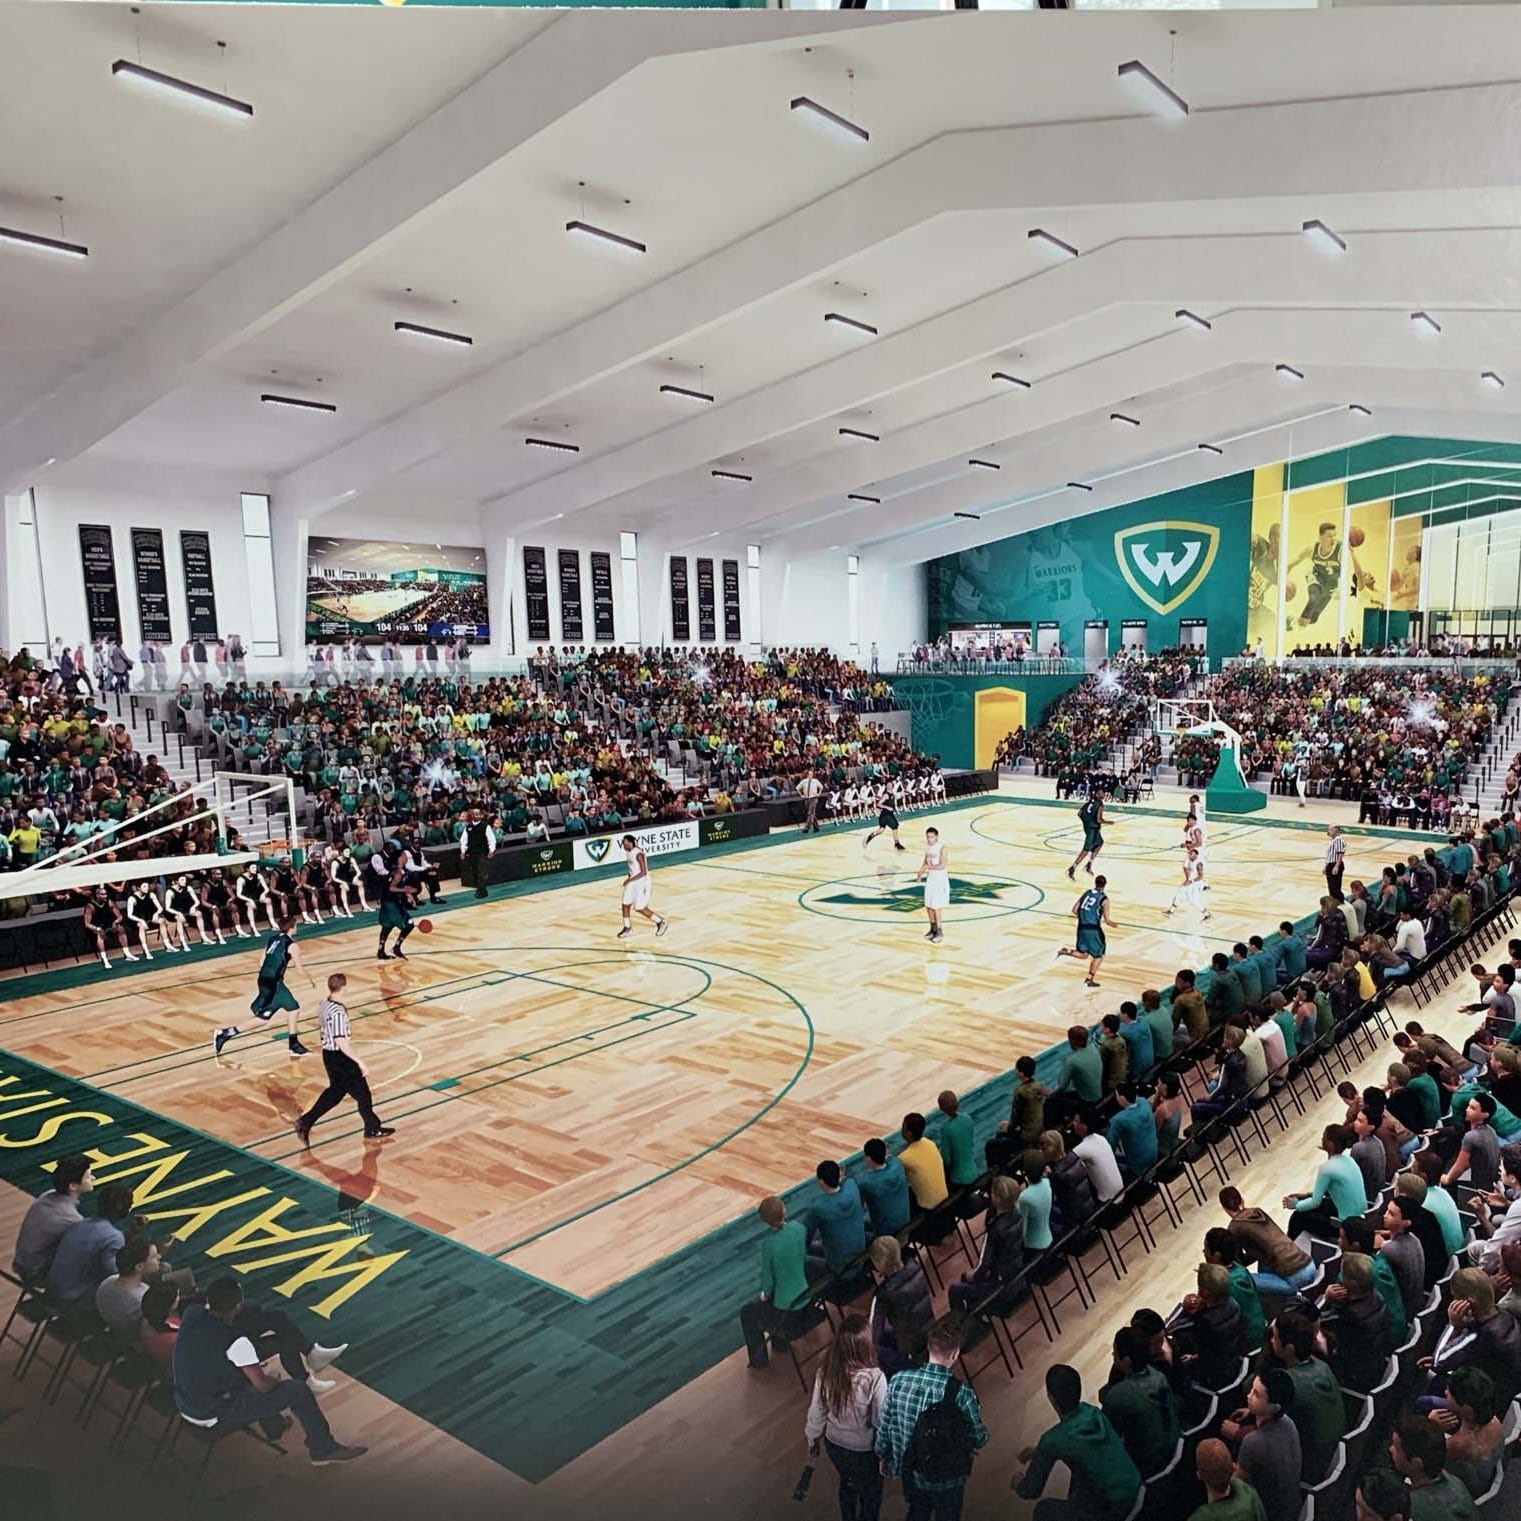 Wayne State to build $25M athletic facility, house Pistons' G-League team